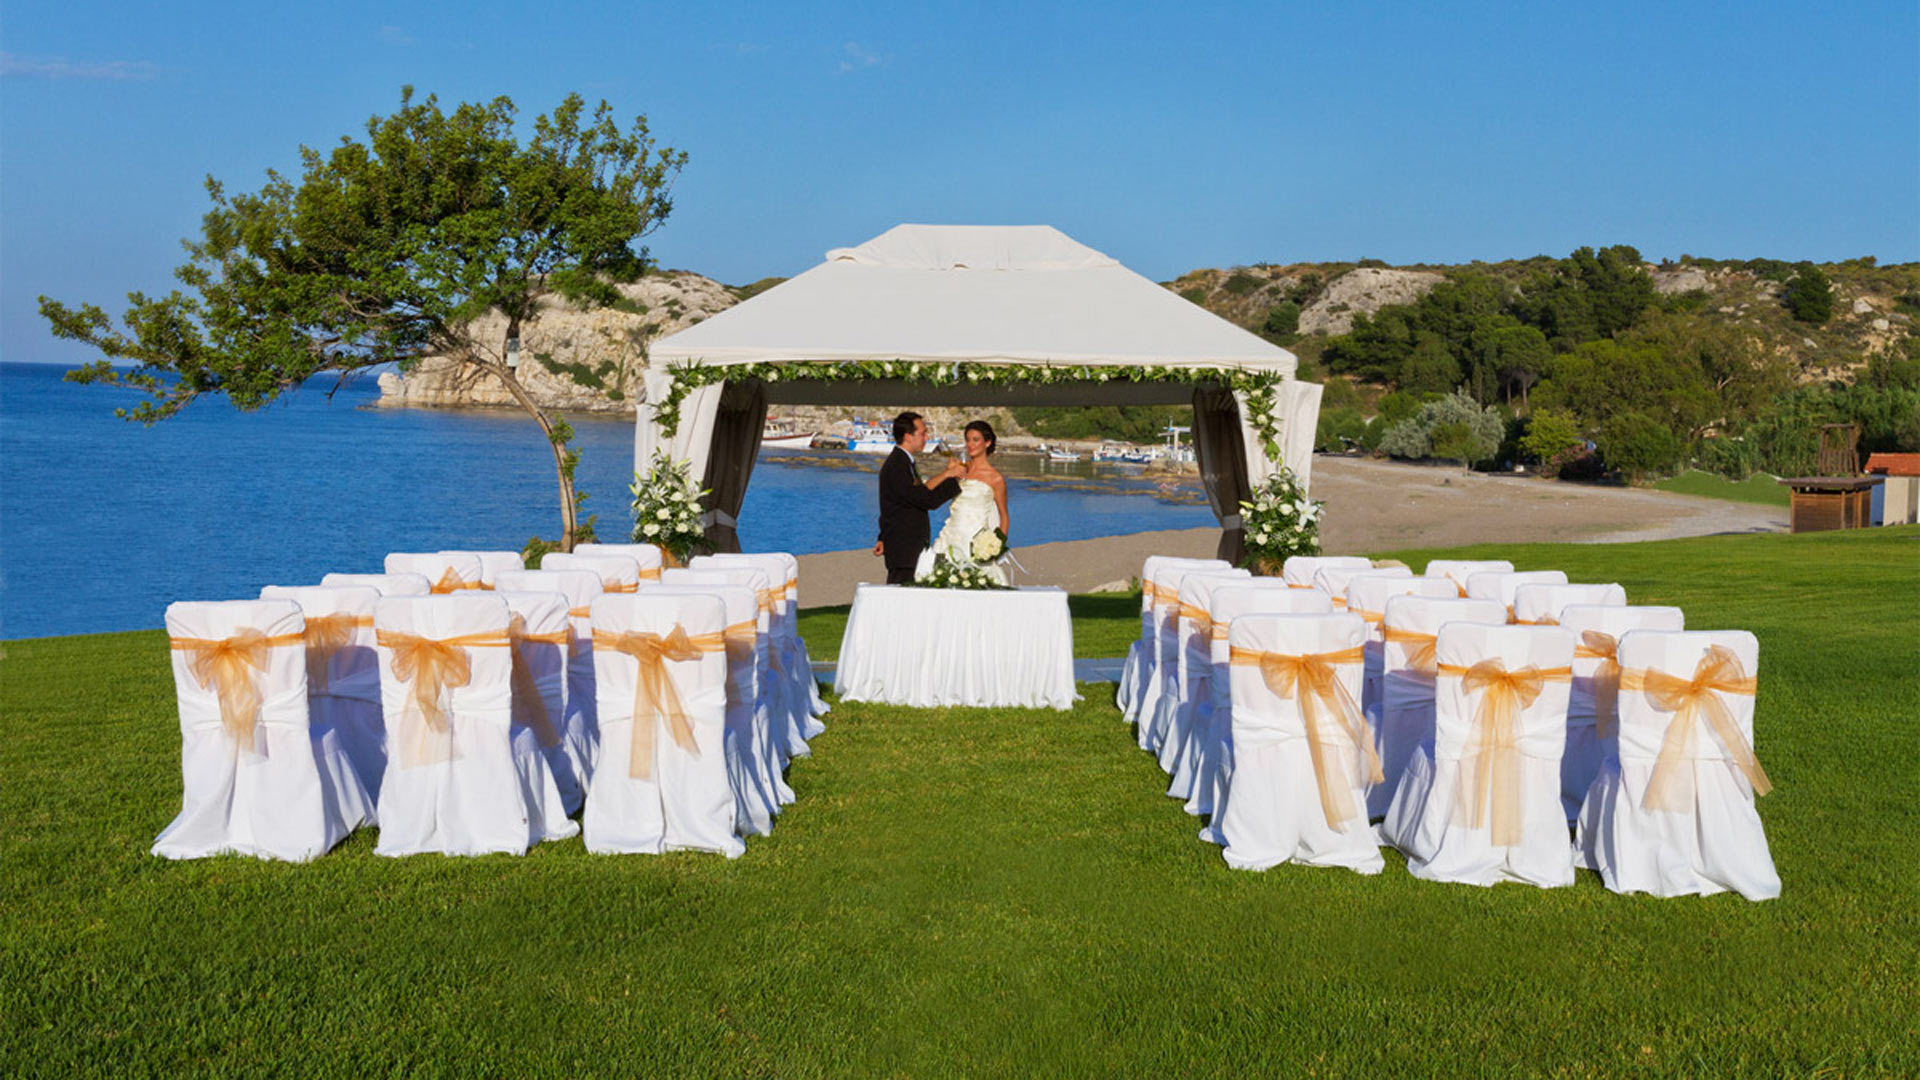 Weddings-Your most important day with us